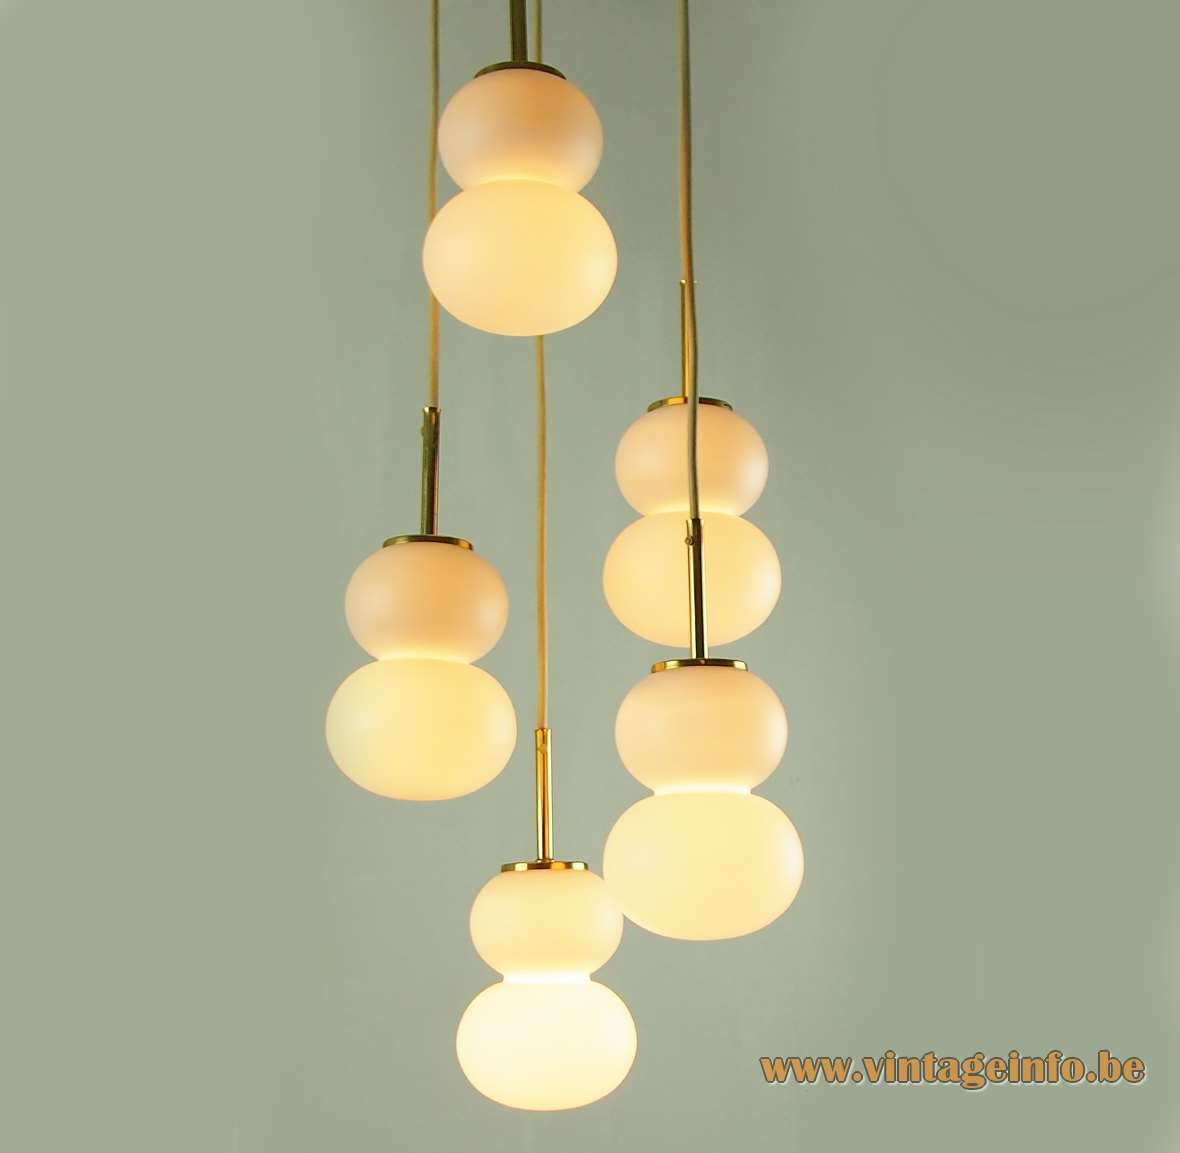 DORIA pumpkin cascade pendant chandelier 5 frosted glass calabash style globes brass rods 1960s 1970s Germany